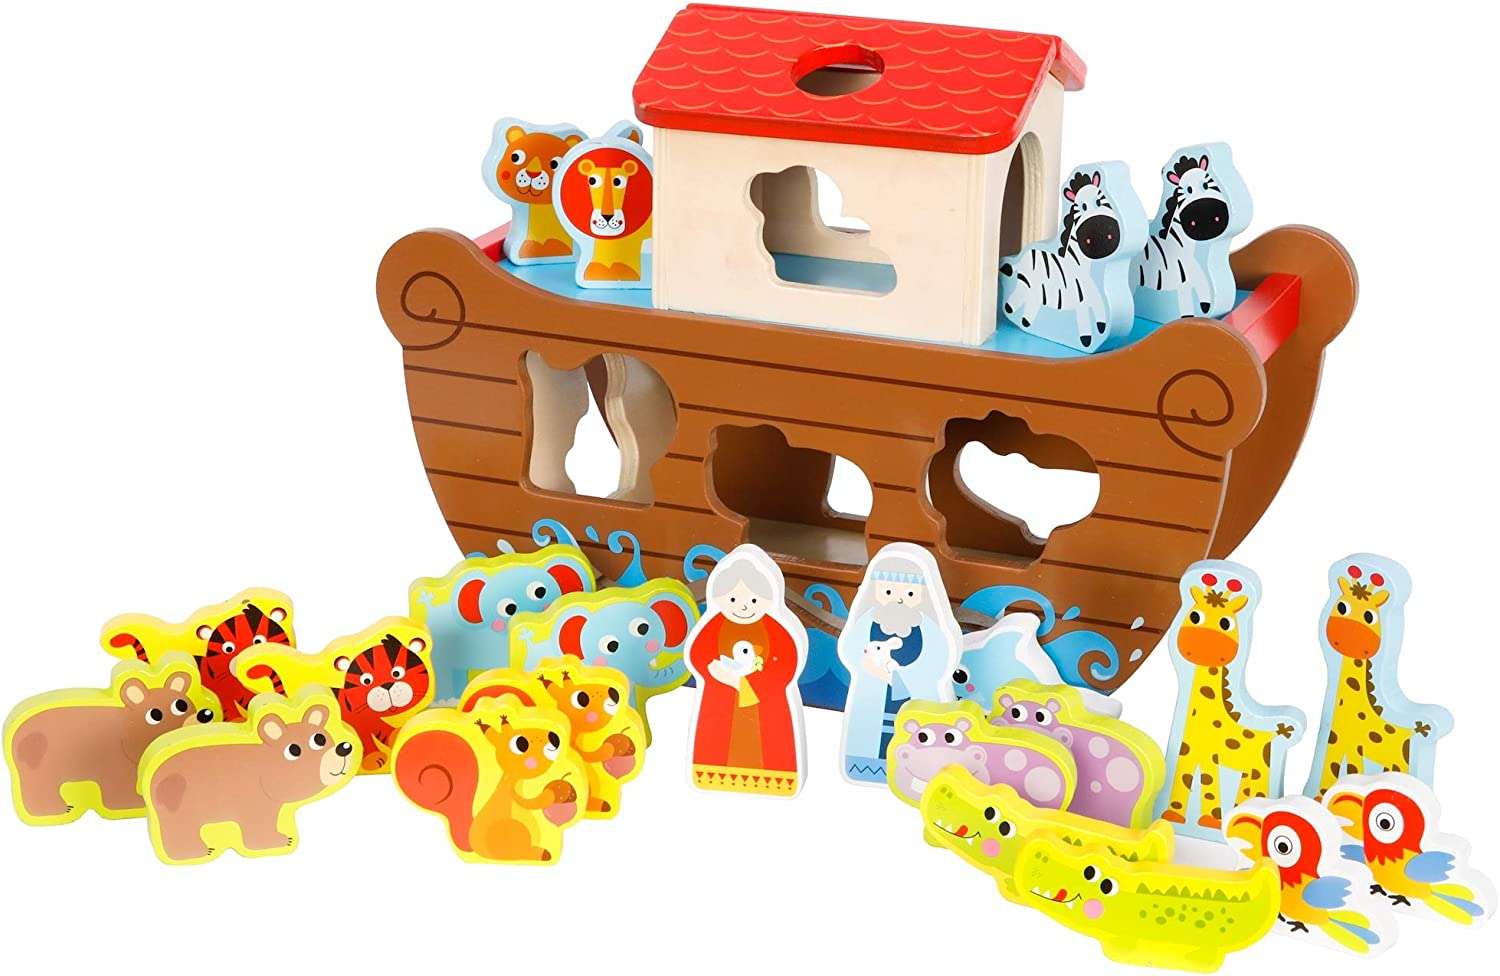 Fat Brain Toys Noah's Ark Sort & Play Set Early Learning Toys for Babies